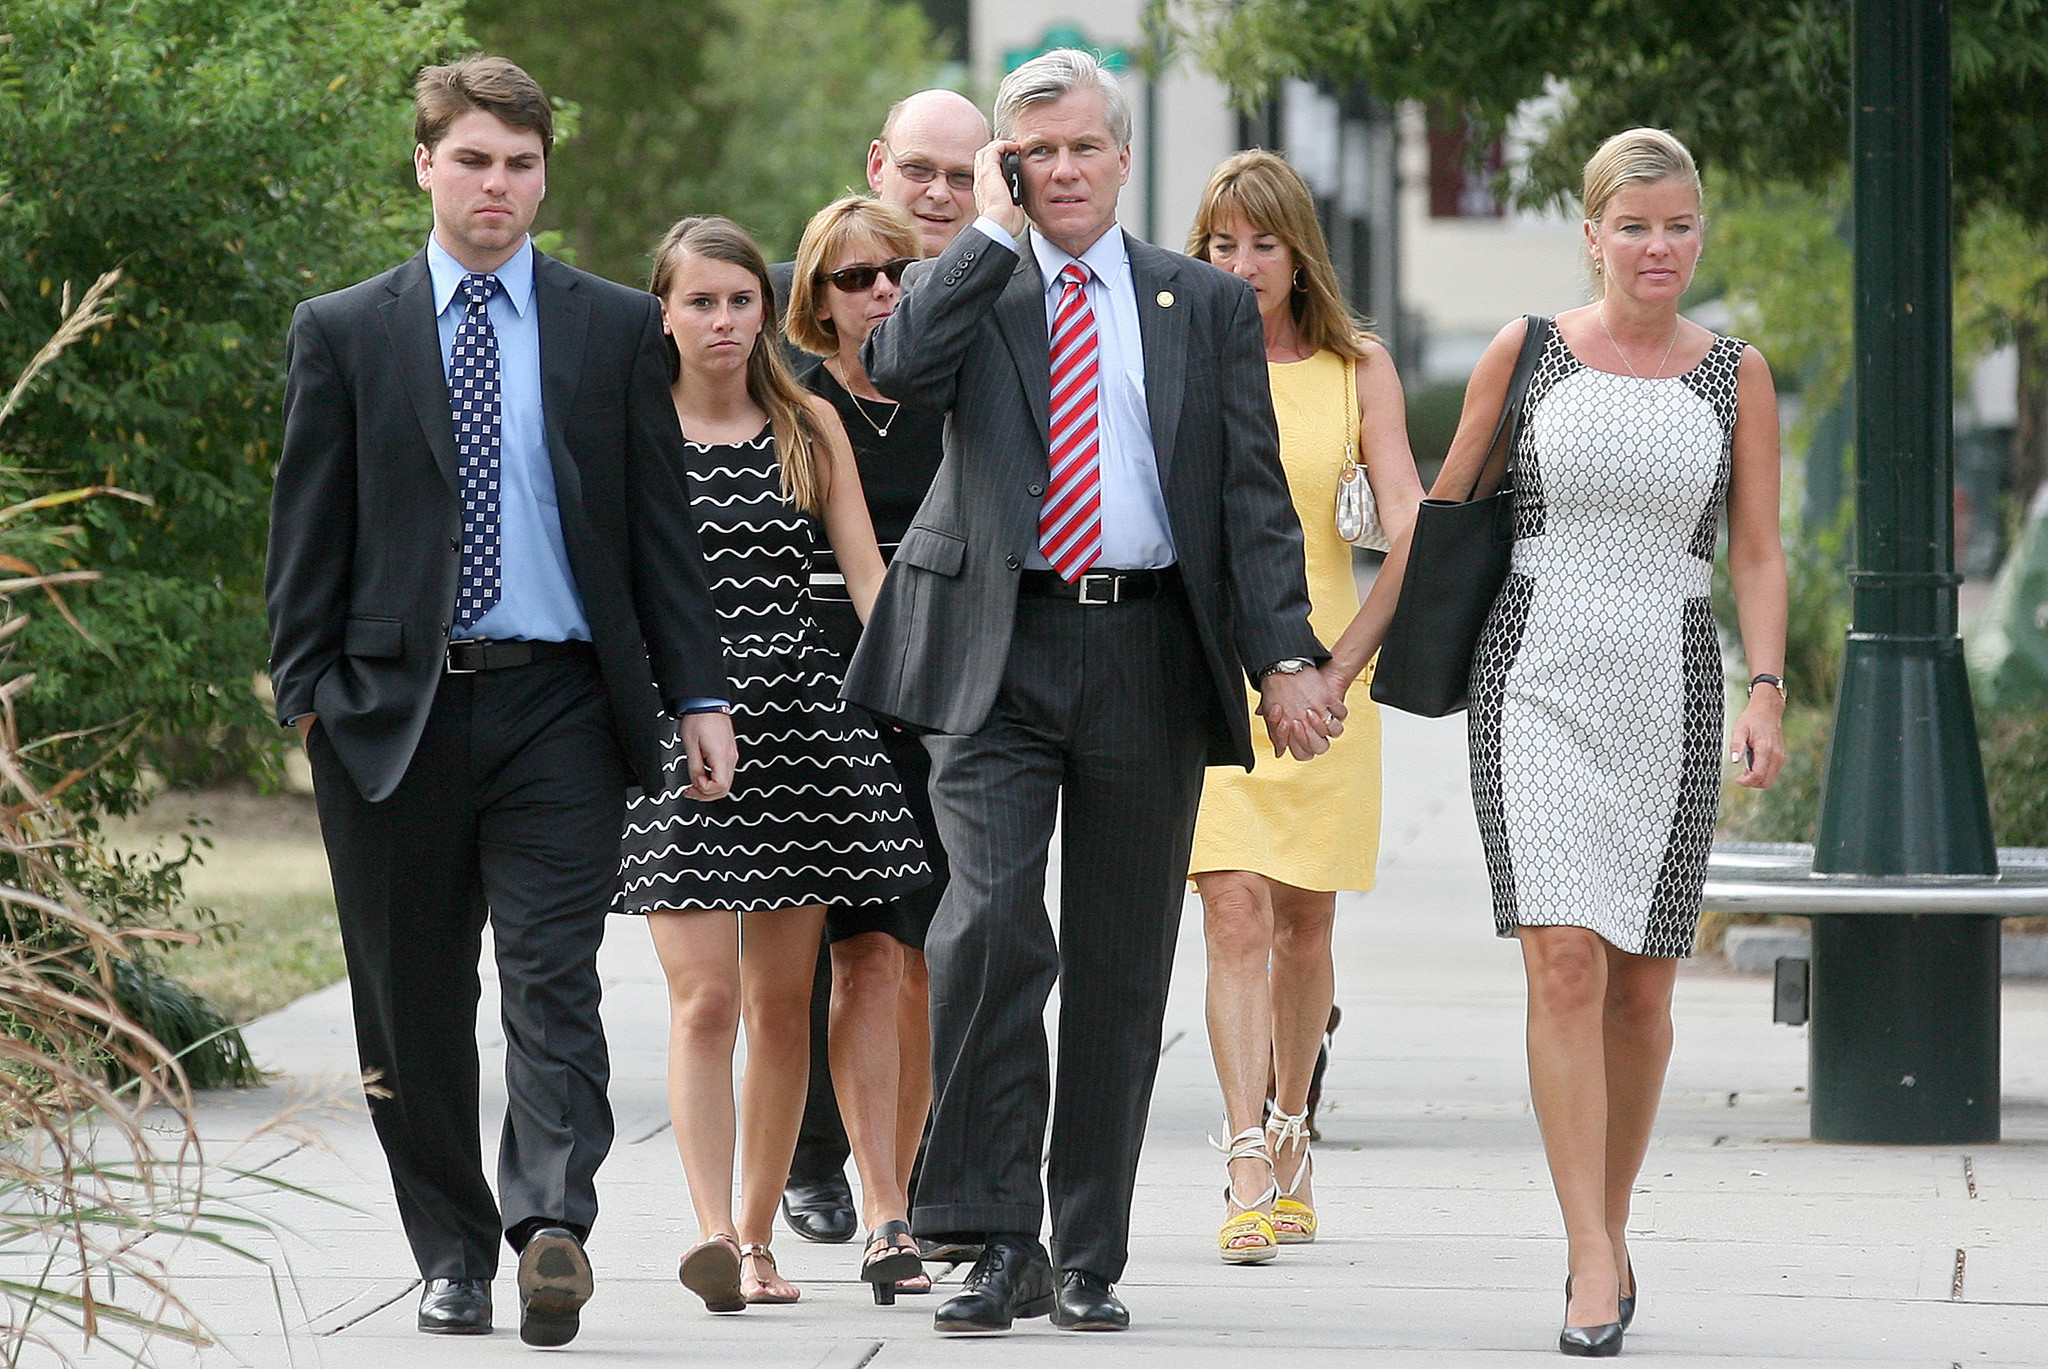 Verdict: McDonnells guilty on multiple counts - Daily Press